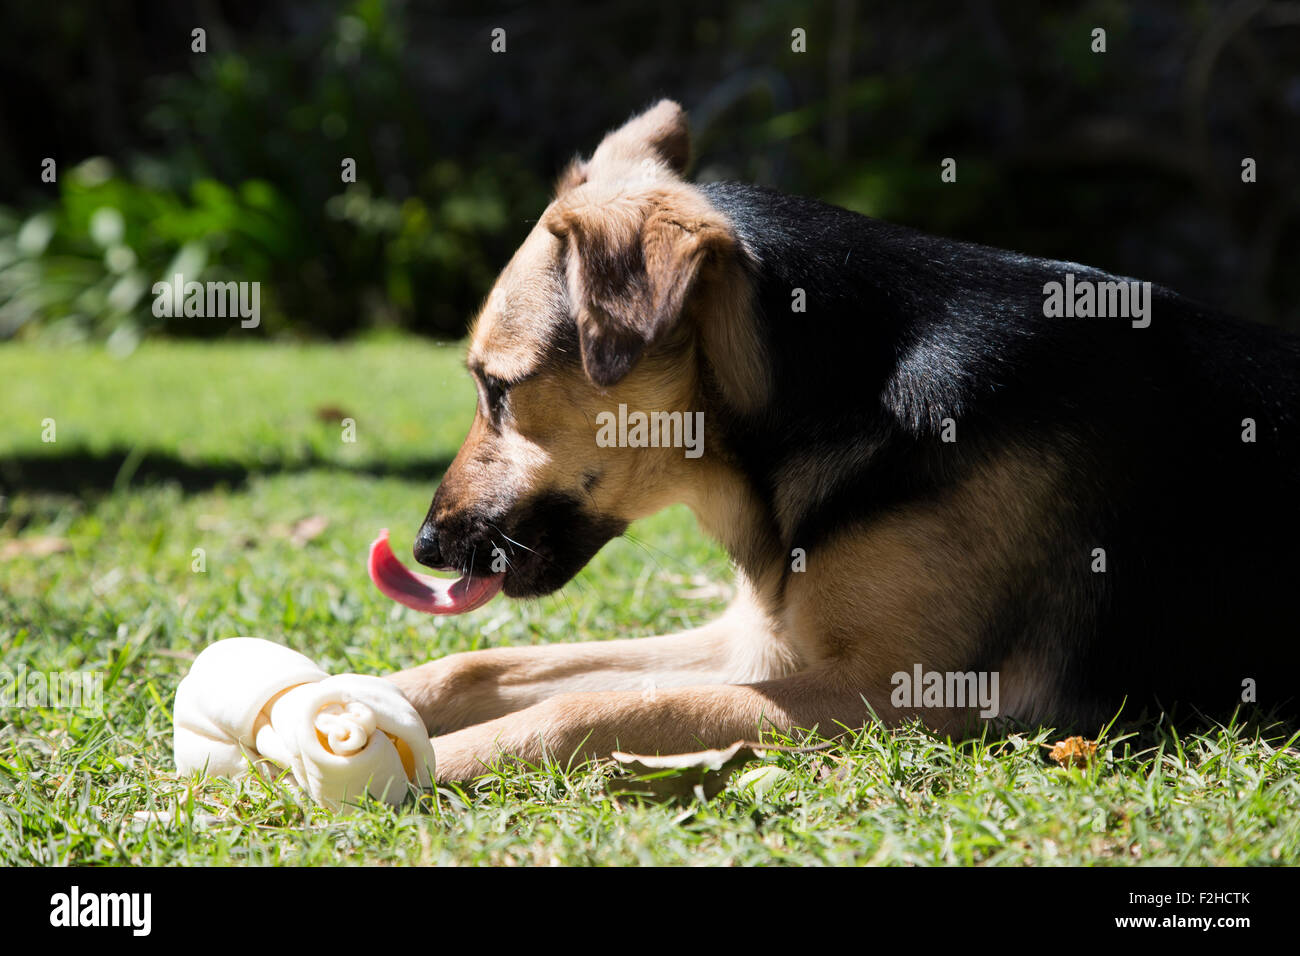 Dog with a rawhide bone, outside at the grass - Stock Image